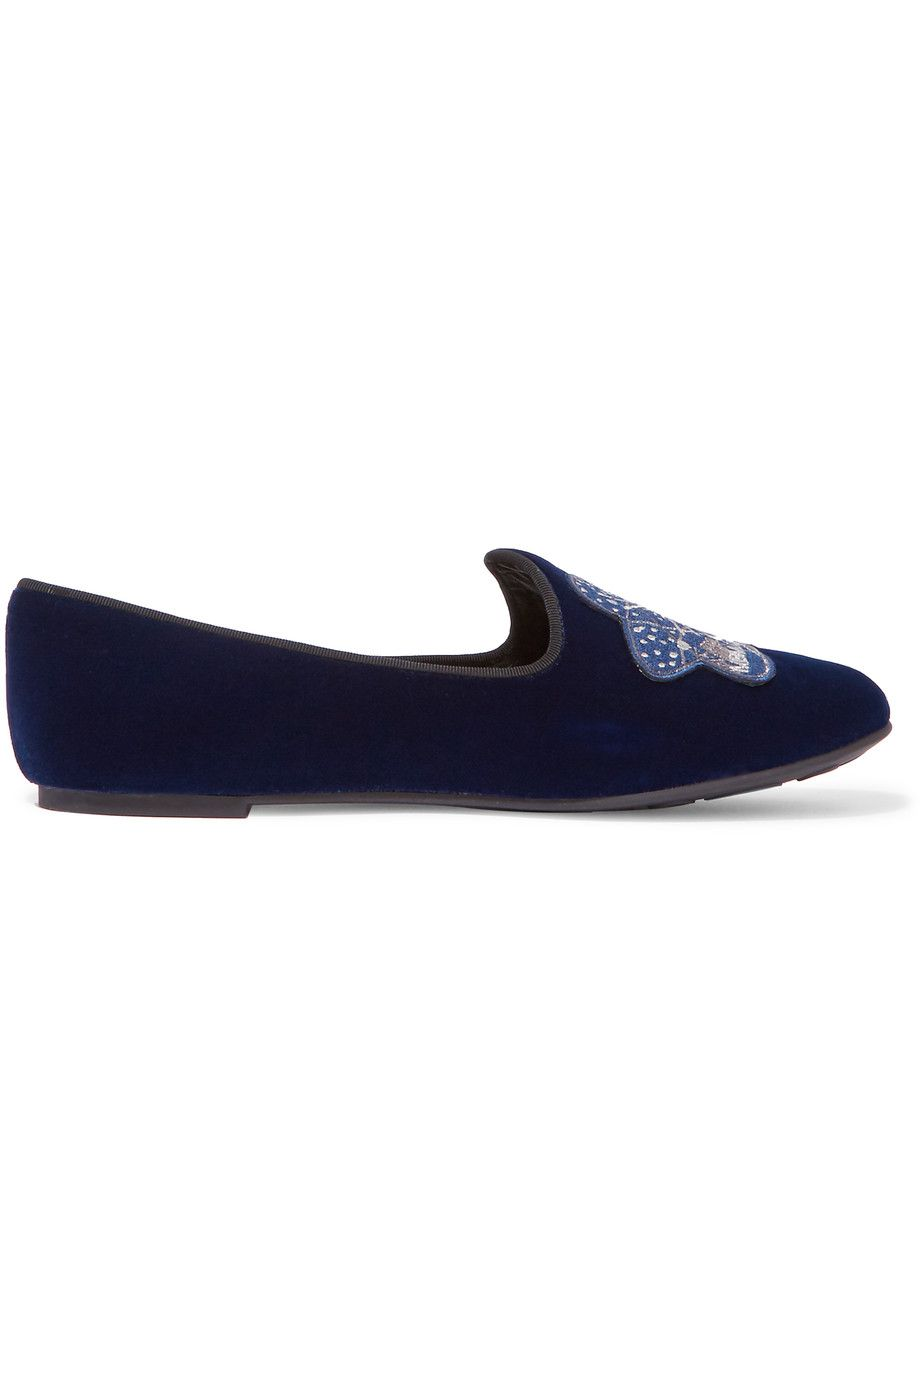 MARC BY MARC JACOBS Appliquéd Velvet Slippers. #marcbymarcjacobs #shoes #flats